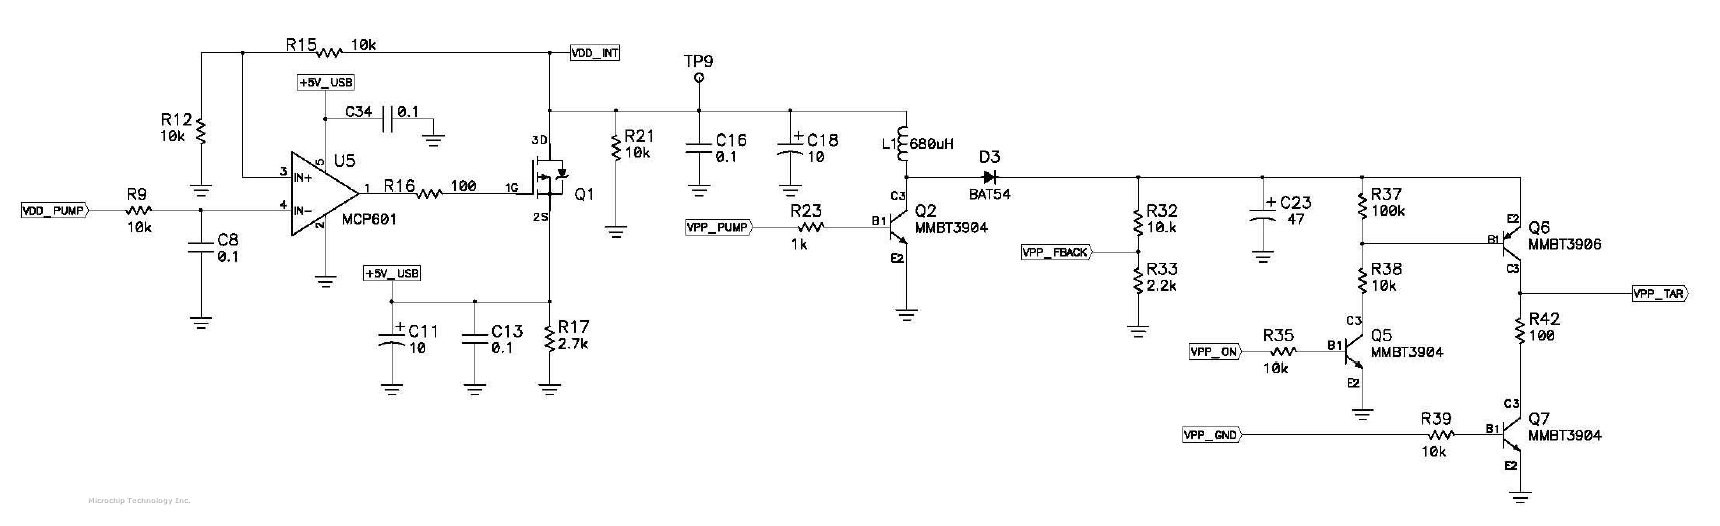 The problem seems realted with VPP circuit inside PICkit 3 more exactly next I O VPP PUMP VPP FBACK VPP ON VPP GND